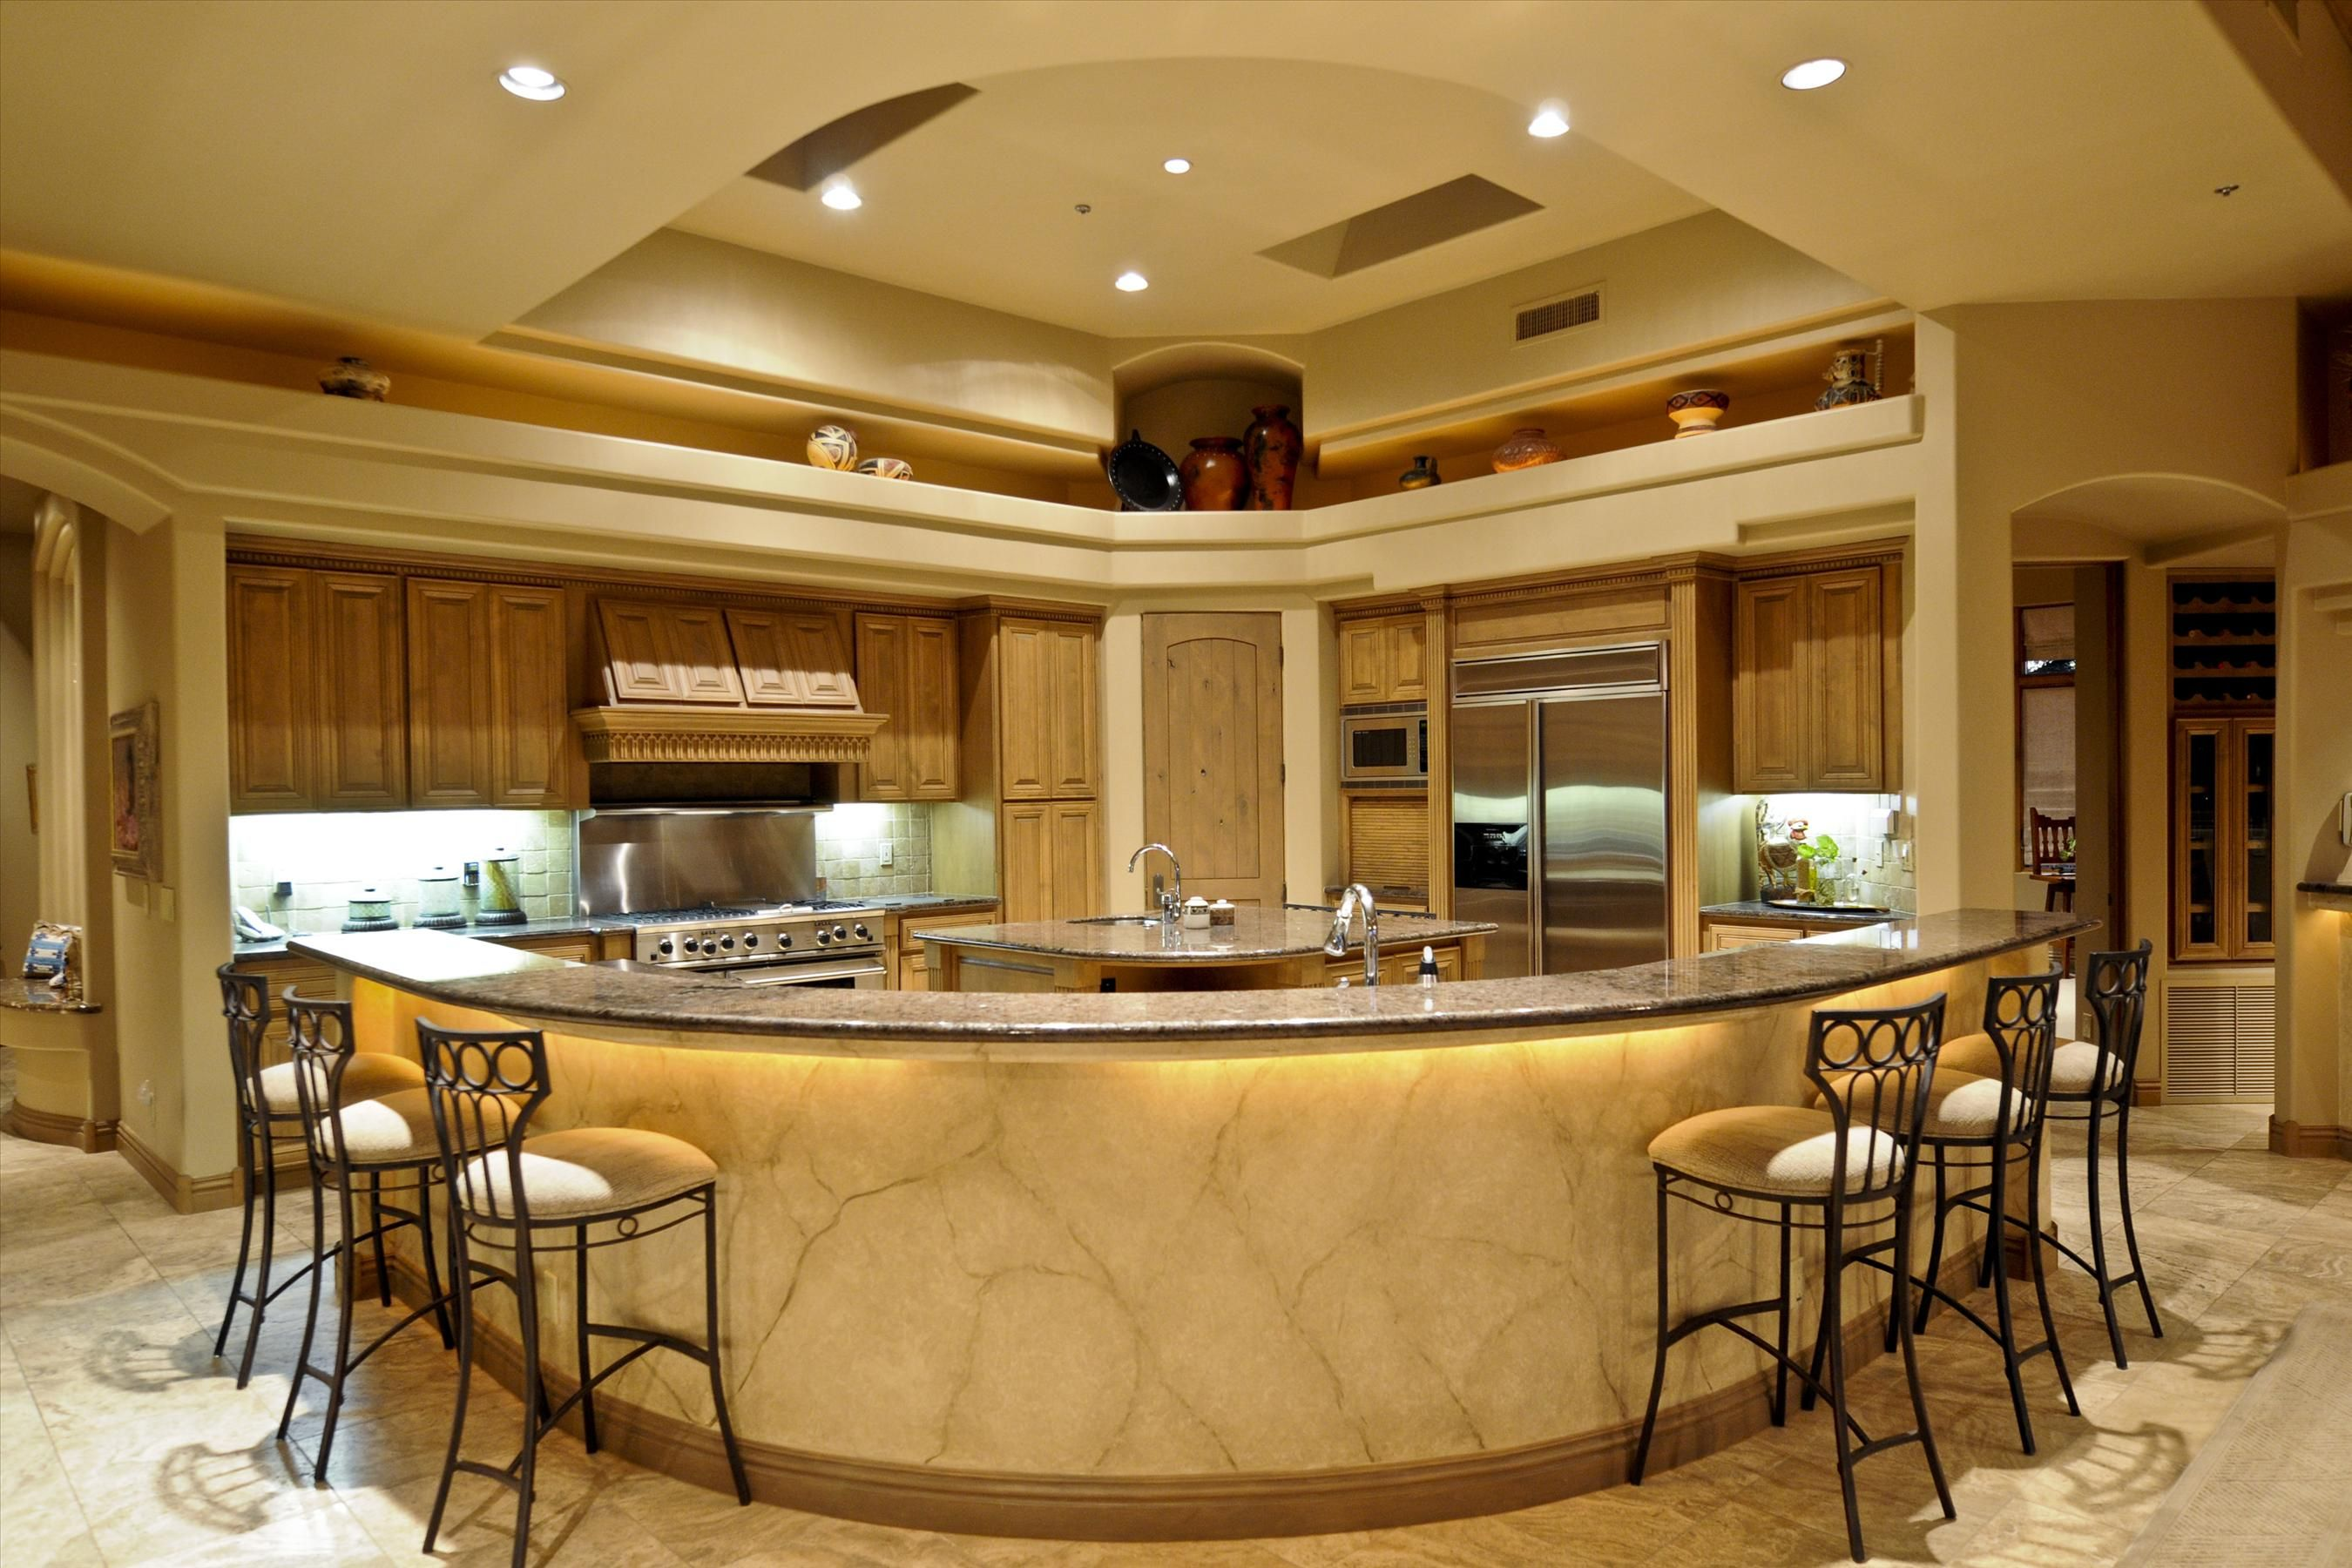 Premier luxury kitchens custom designed and for Luxury kitchen layout